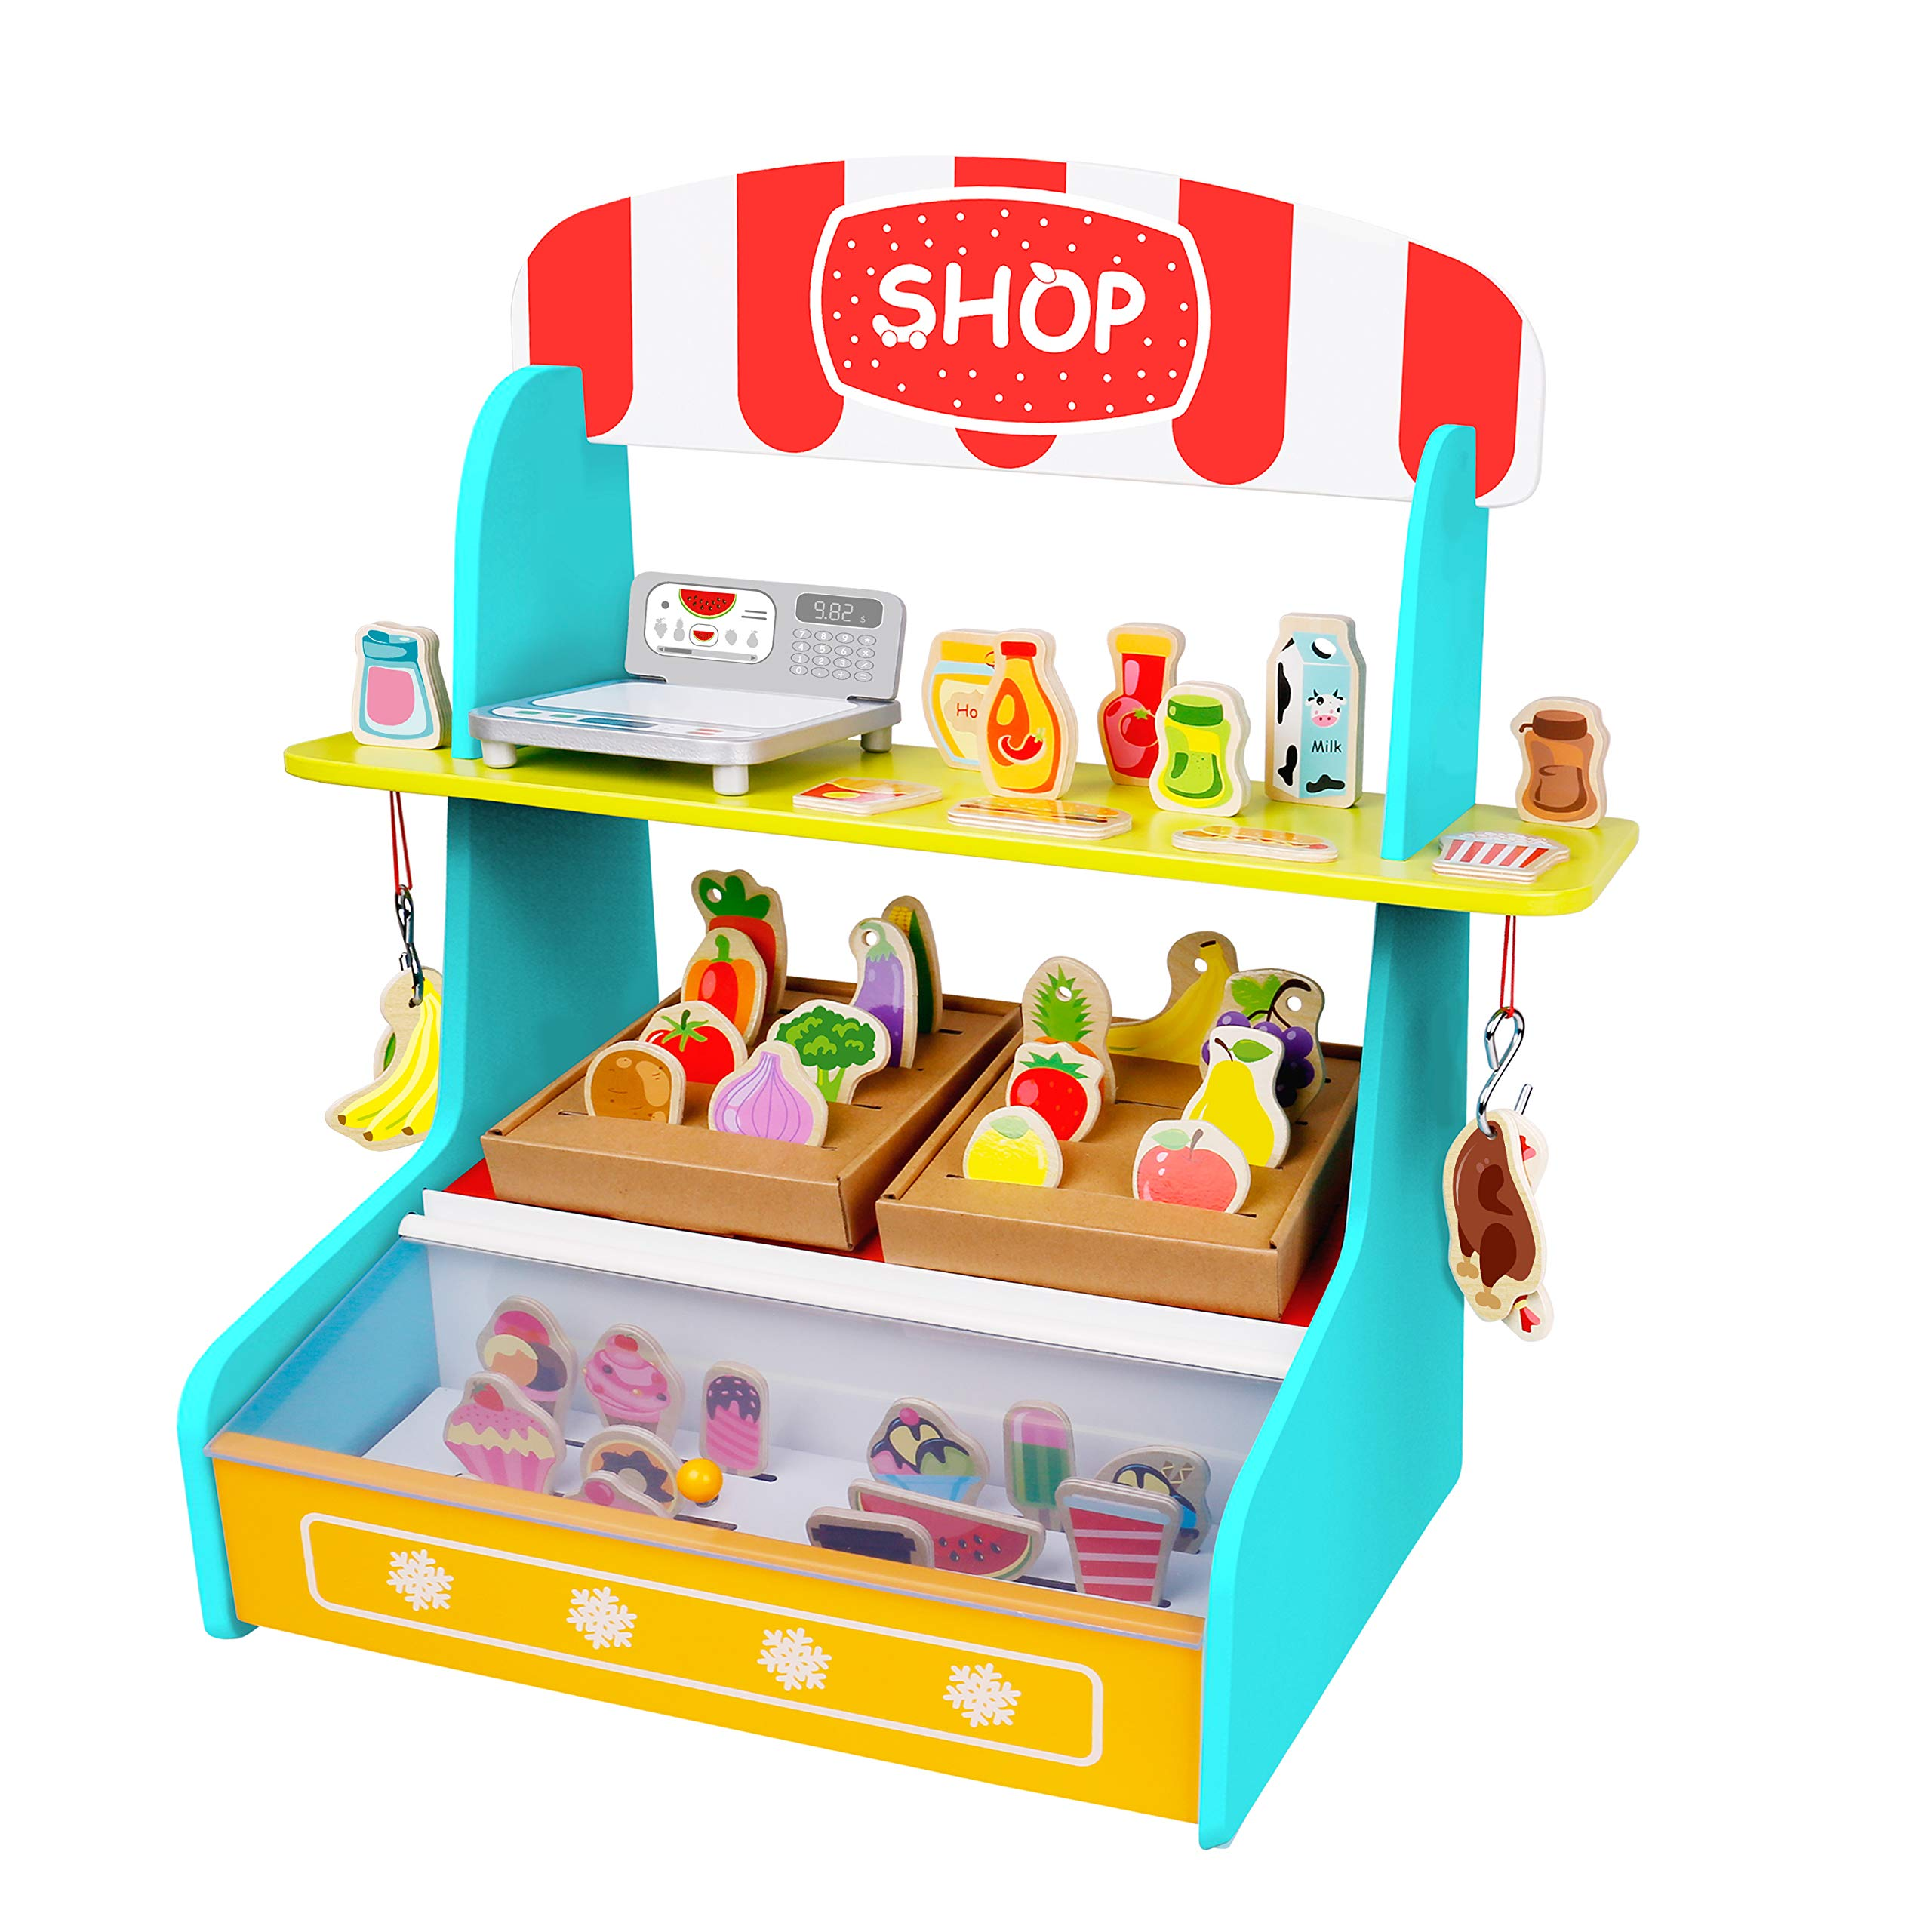 TOYSTER'S My Play Shop Wooden Grocery Store Stand | Pretend Play Kitchen Workshop for Toddler Girls and Boys | Farmers Market Lemonade Wood Toy Includes Play Fruits, Vegetables and Ice Cream